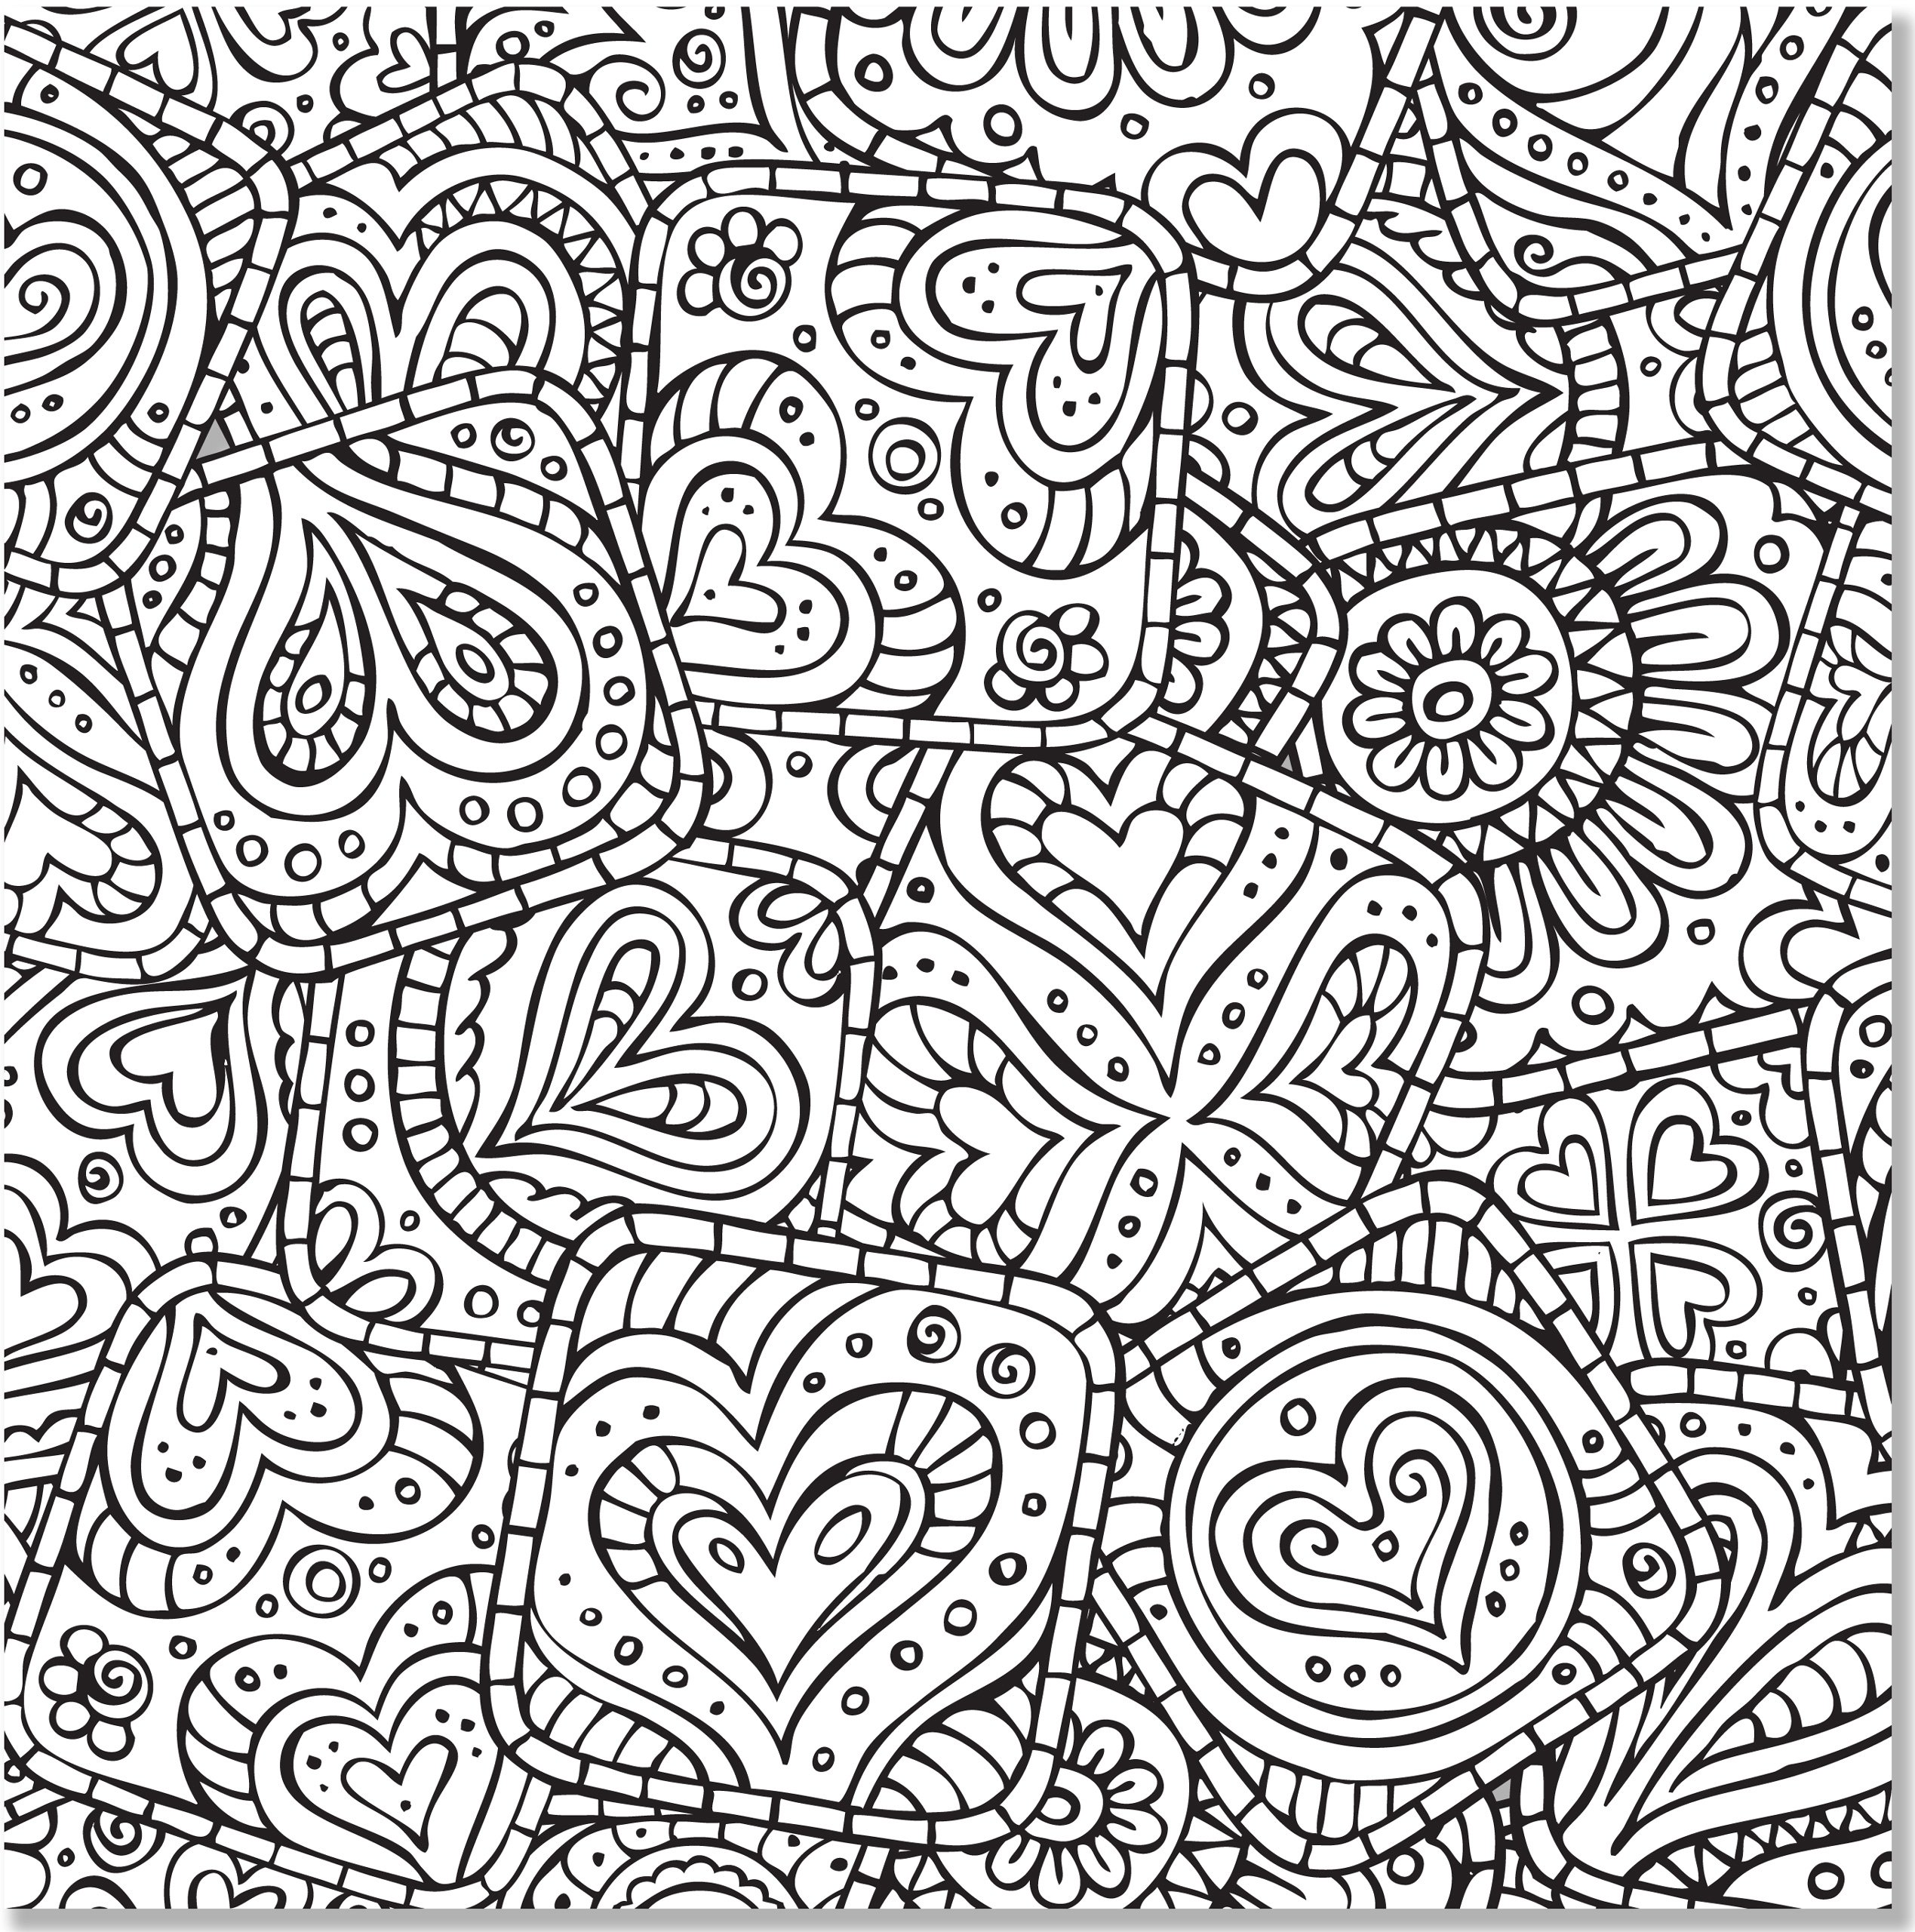 amazon com doodle designs coloring book 31 stress